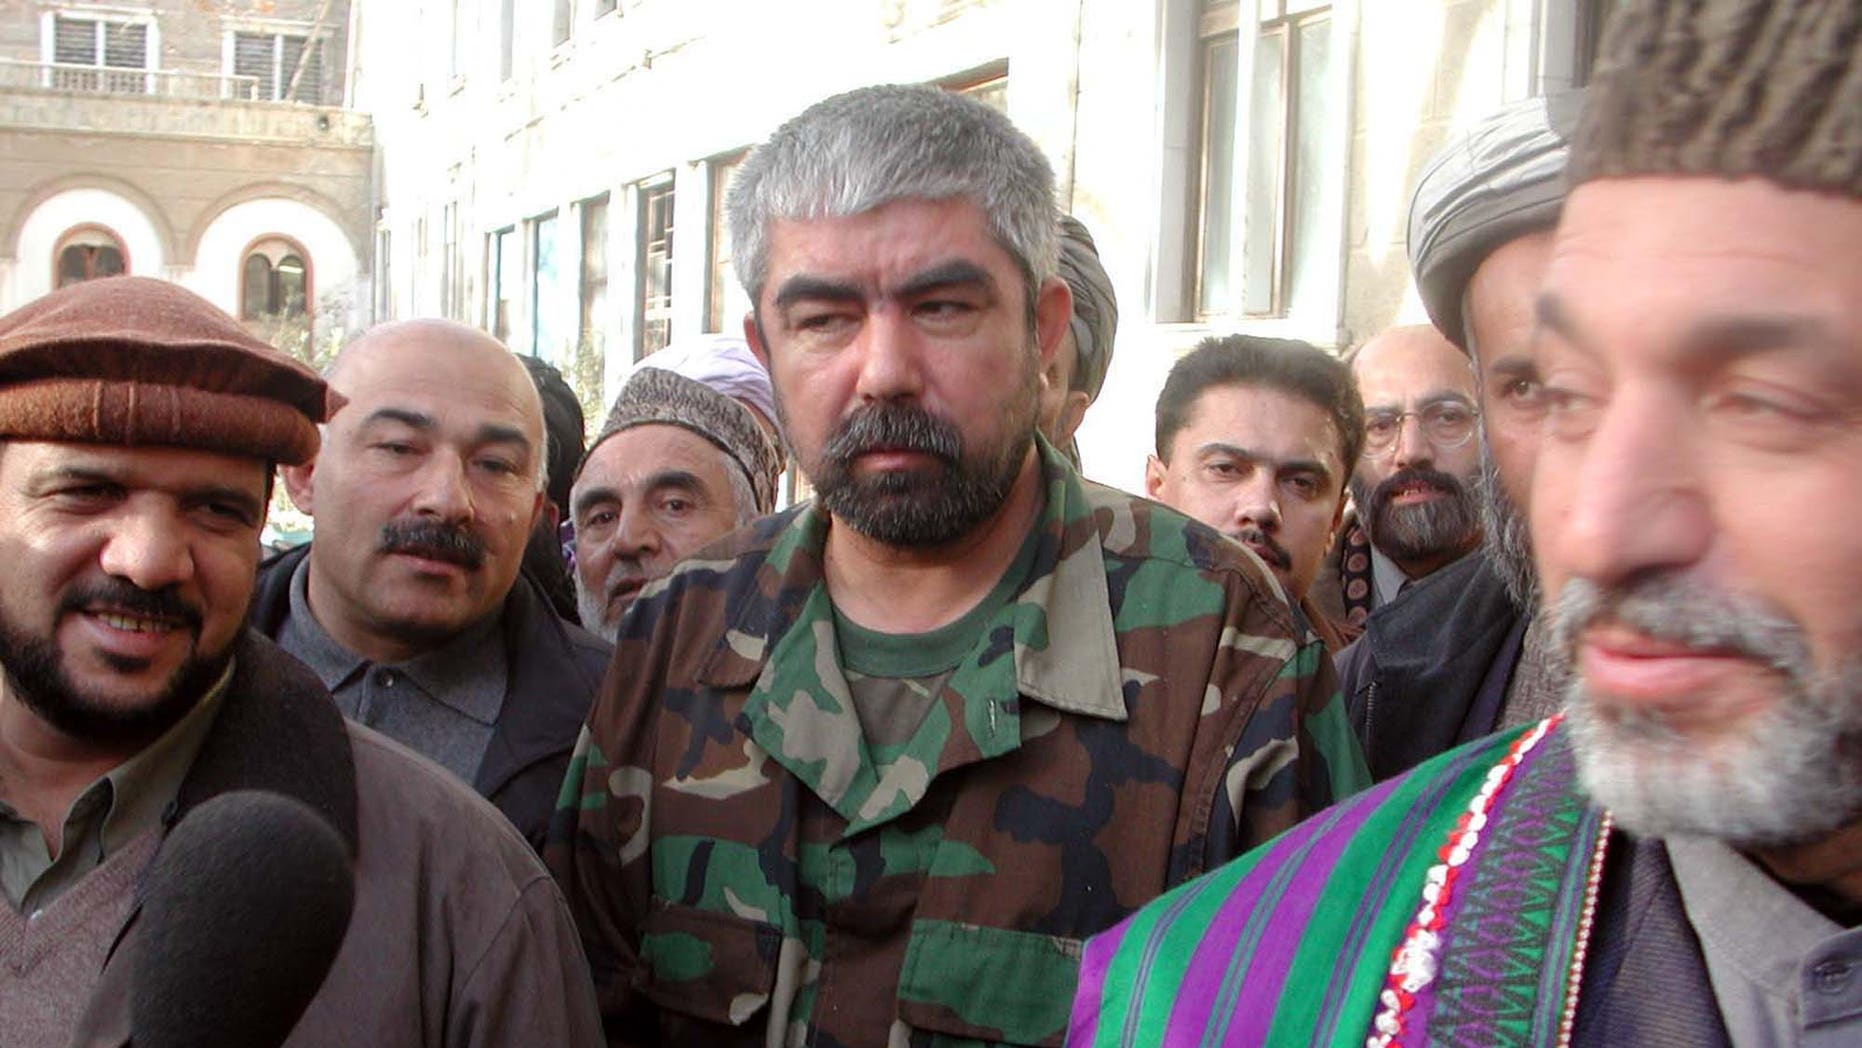 In this Monday, Dec. 24, 2001 file photo, Afghanistan's new premier Hamid Karzai, right, stands with Uzbek General Abdul Rashid Dostum, center, with Mohammed Qasim Fahim, left, as defense ministers.